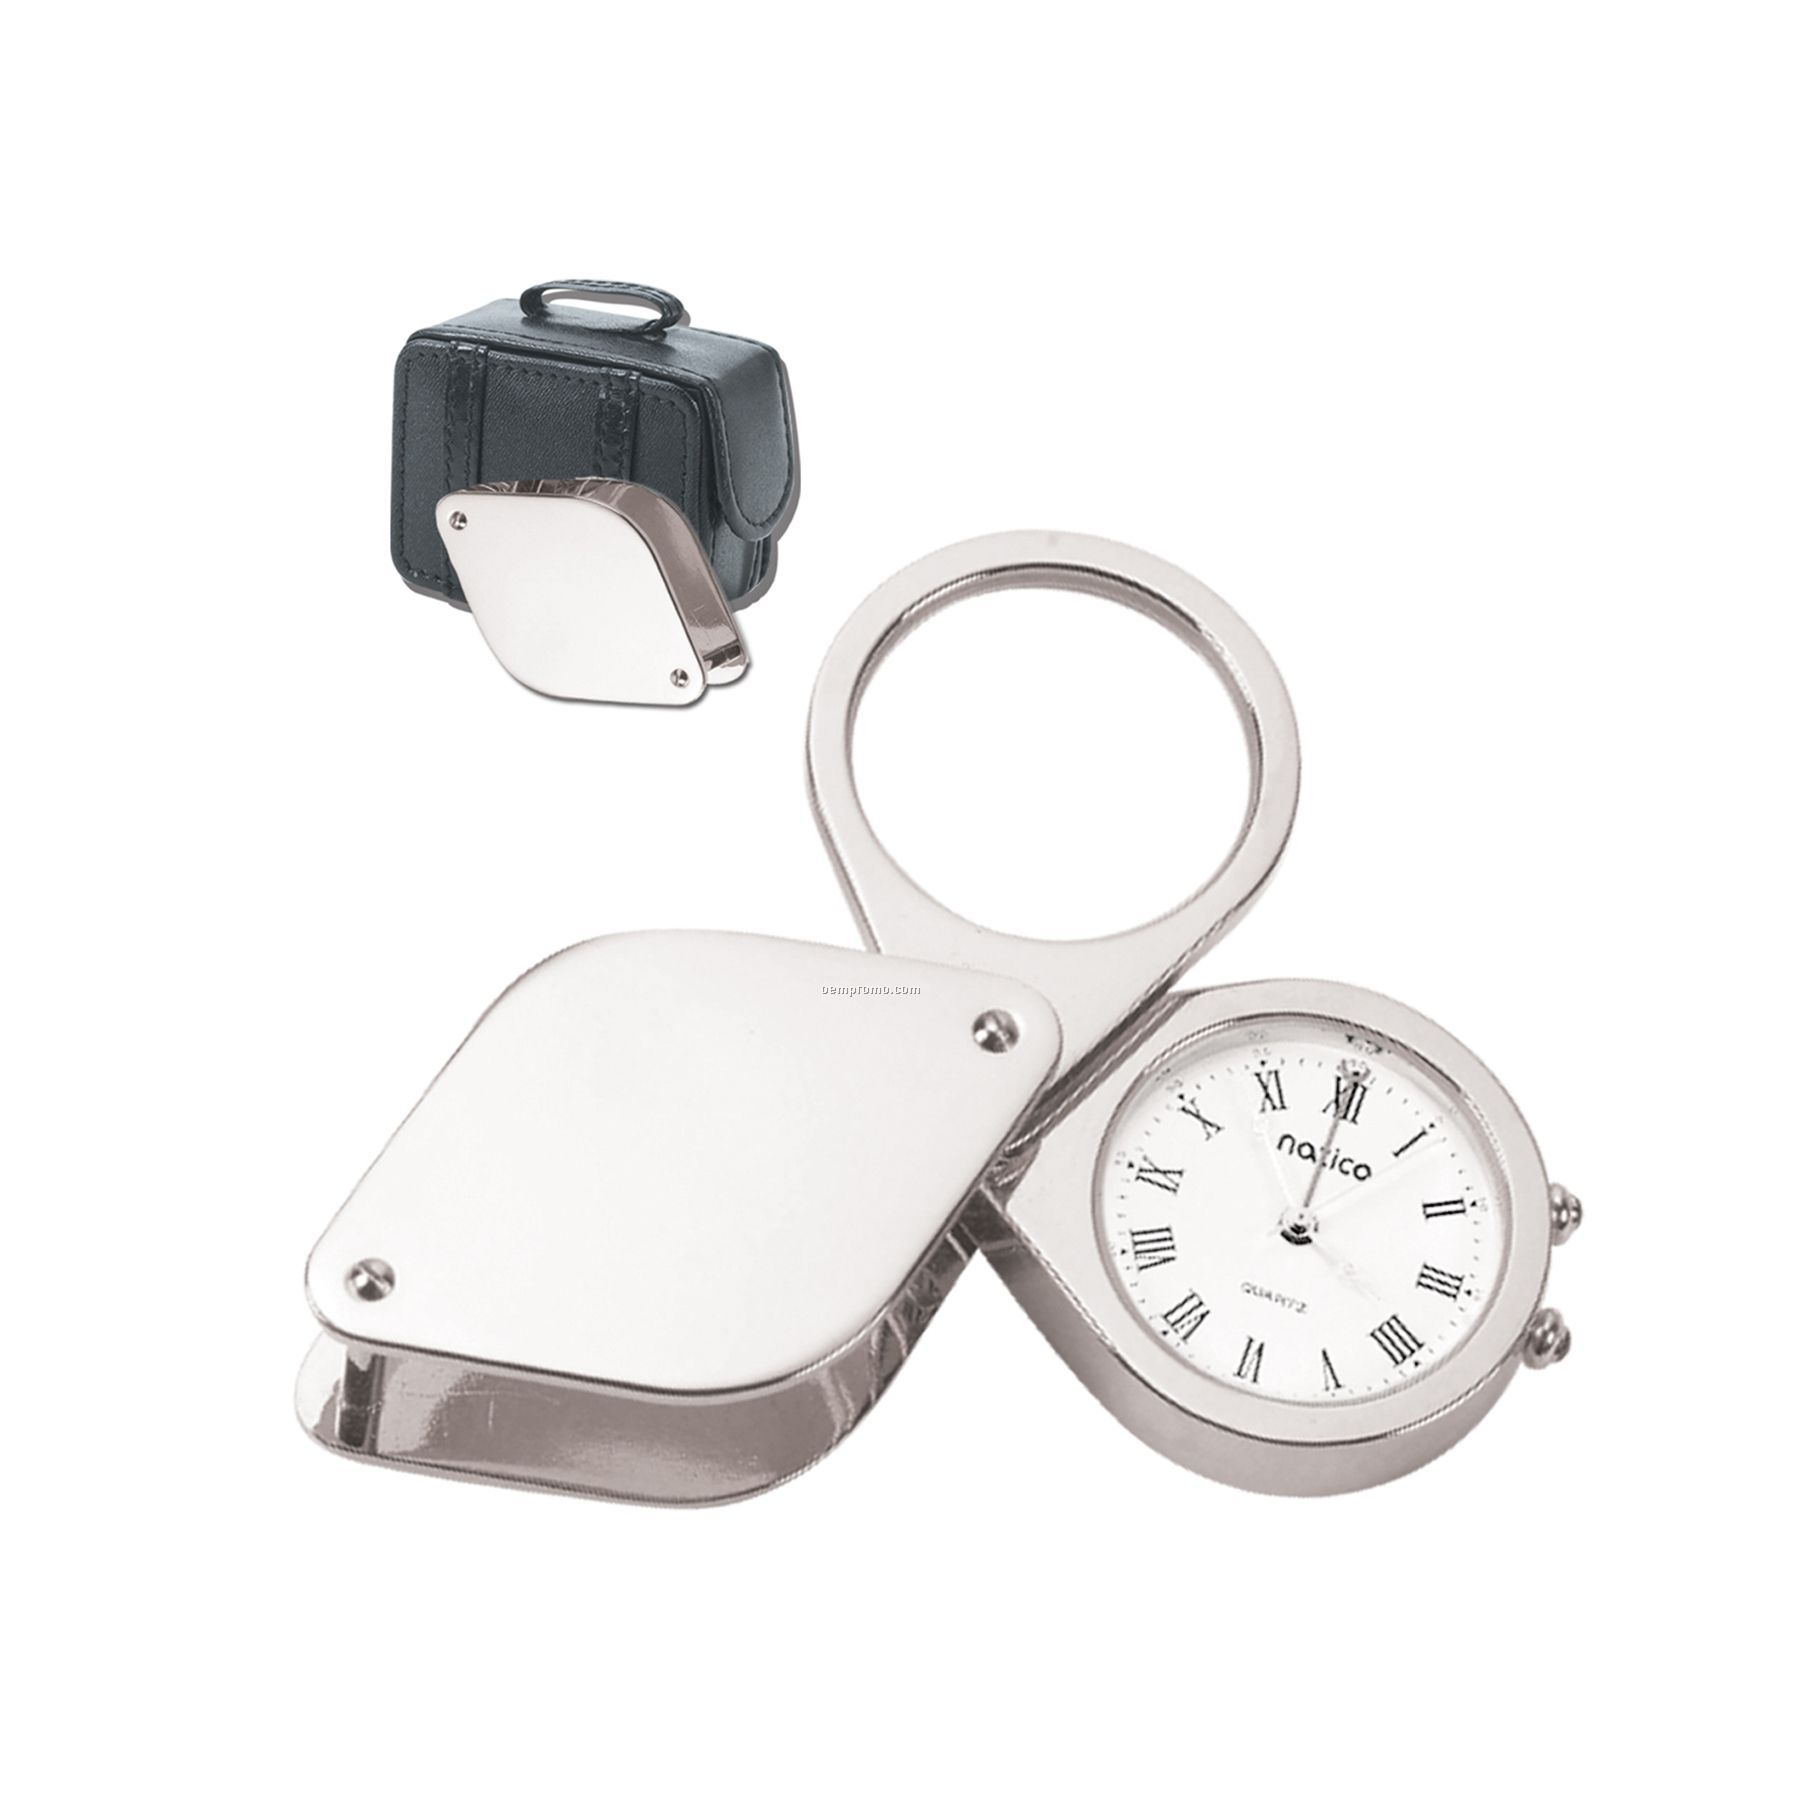 Silver Travel Alarm Clock W/ Magnifying Glass In Leather Case